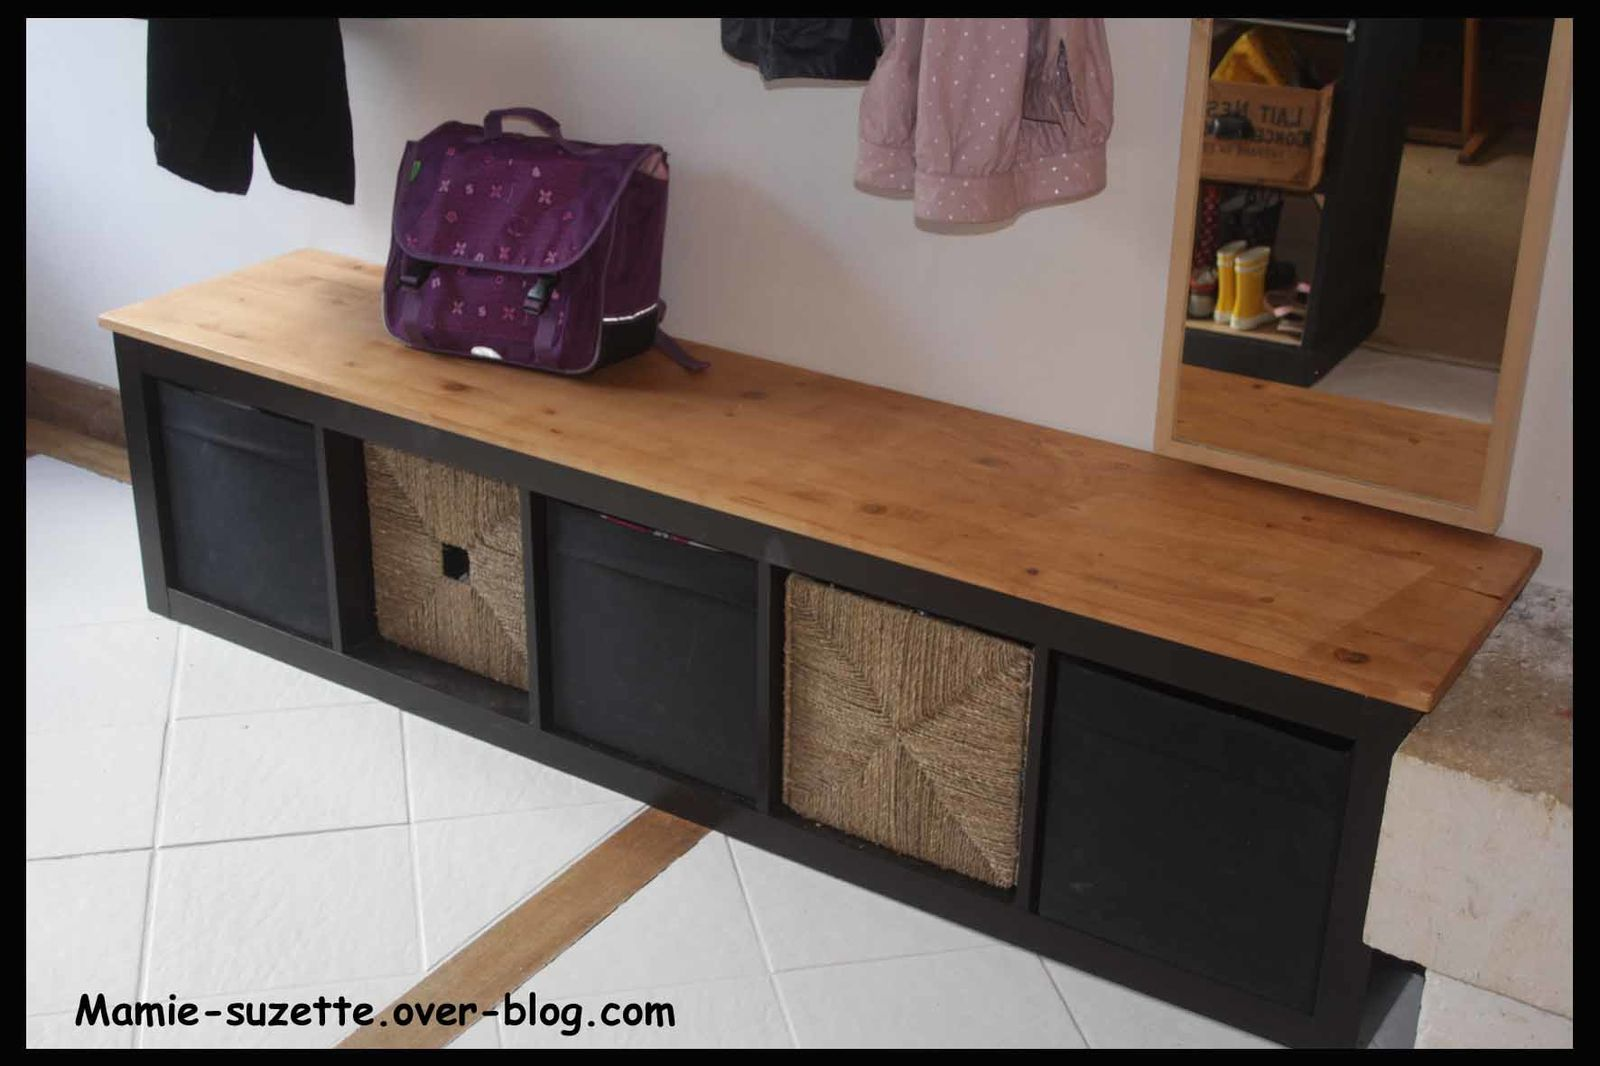 Am nagement de l 39 entr e le blog de mamie for Ikea meuble a chaussures